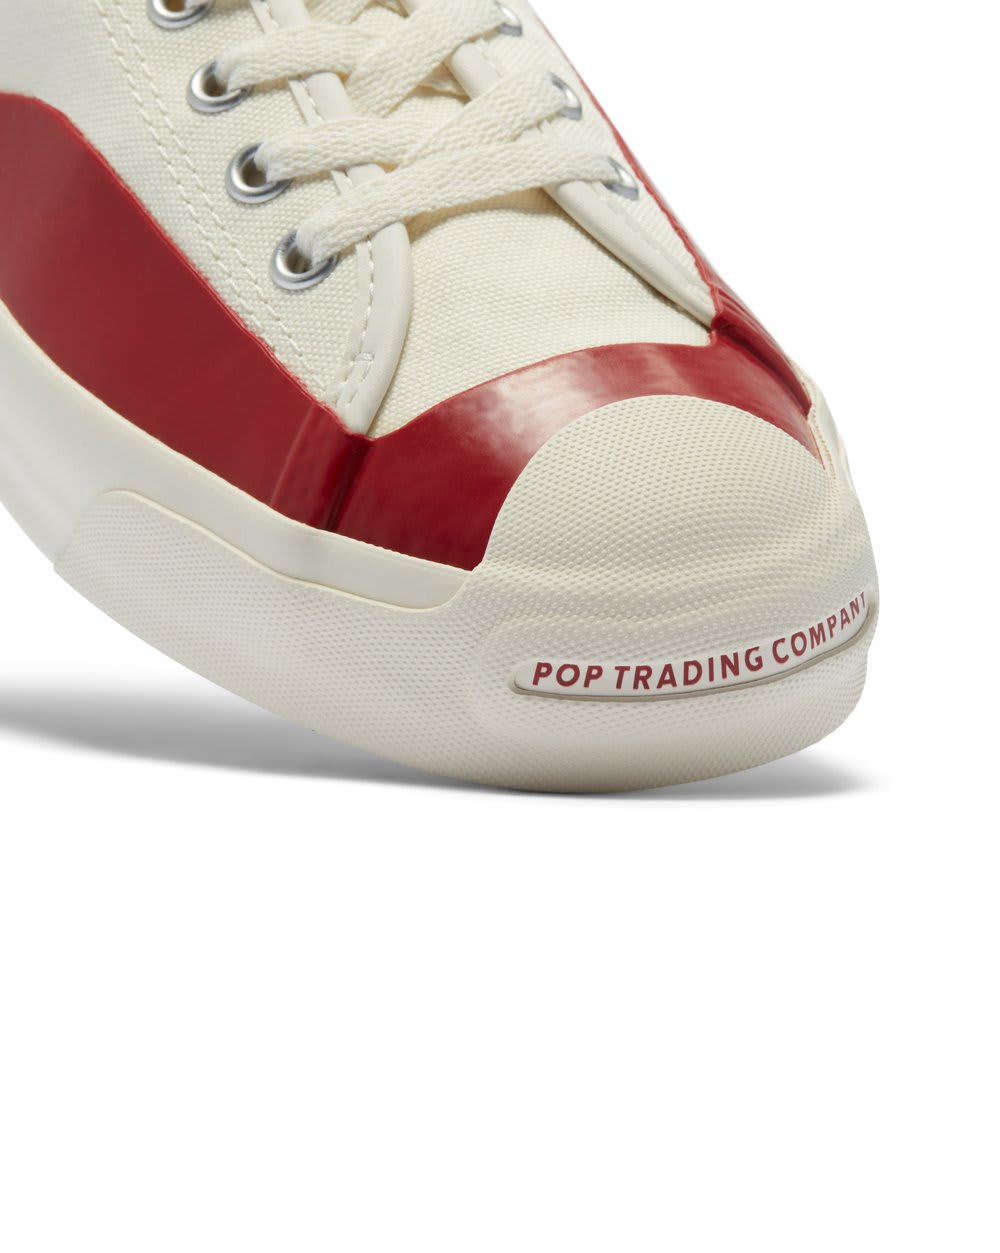 Converse Pop Trading Jack Purcell Pro Ox - Egret / Red Dahlia | Shoes by Converse Cons 6